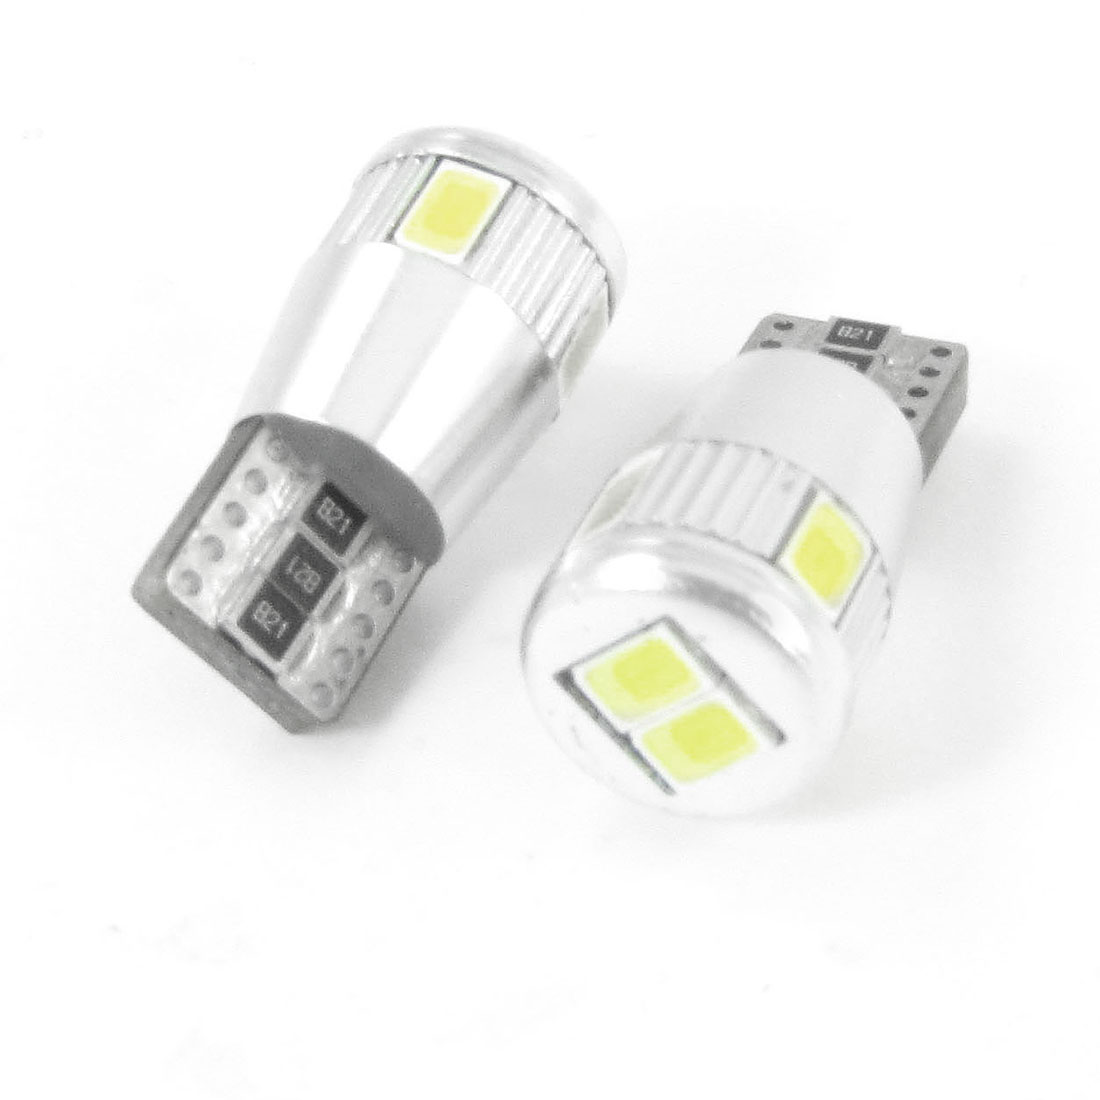 2 Pcs T10 159 6 White 5630 SMD LED Auto Car Error Free Canbus Light